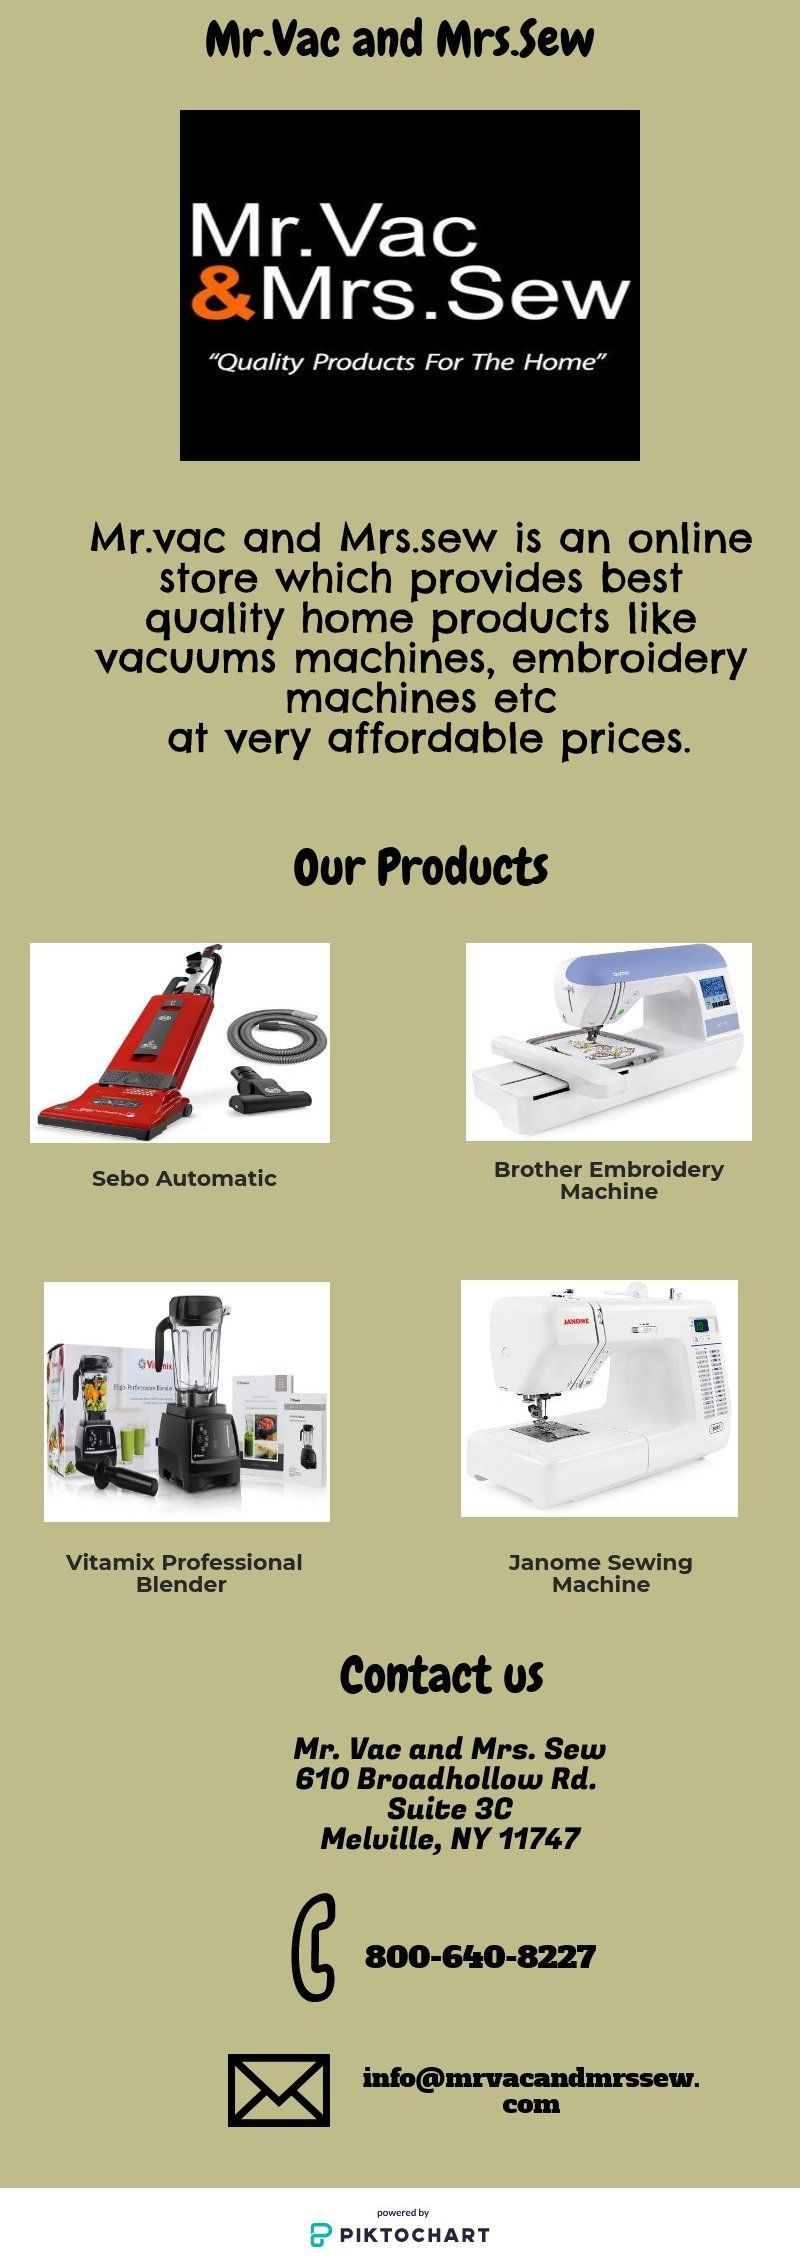 Mr Vac And Mrs Sew Is An Online Which Provides Best Quality Home Products Like Vacuums Machines Embroidery Etc At Very Affordable Prices